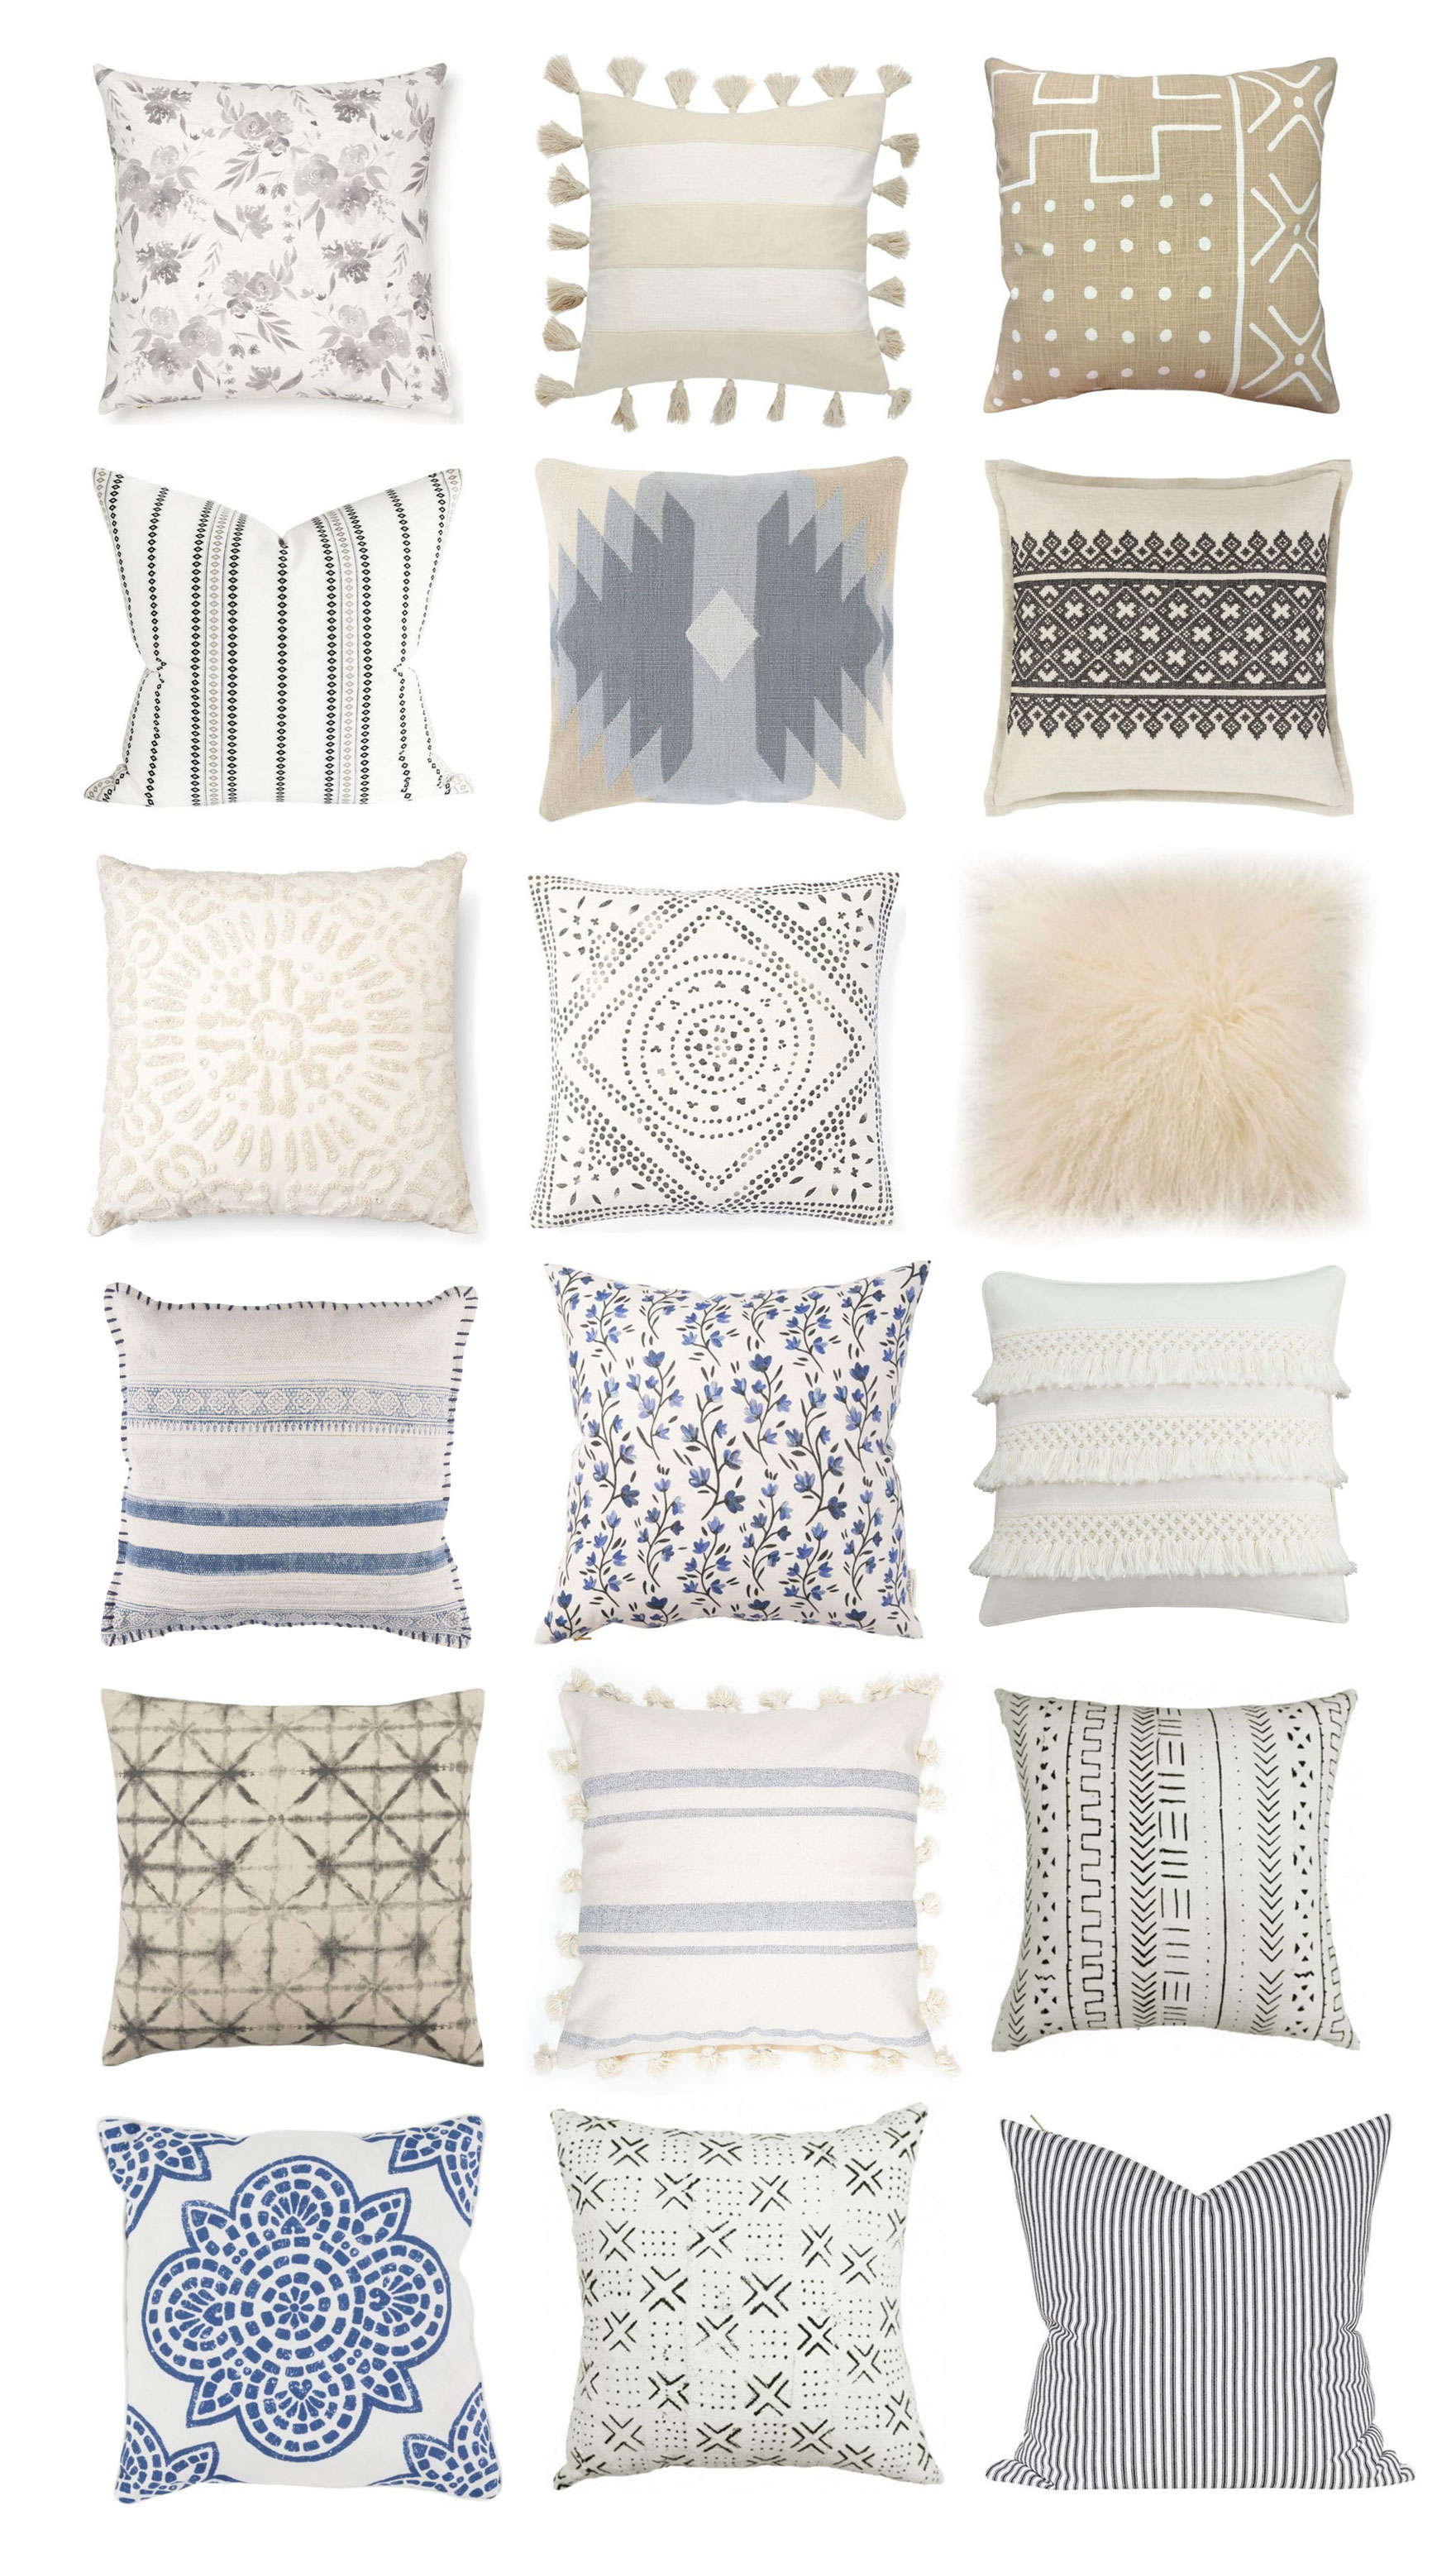 18 Neutral Throw Pillows to Spruce Up Any Space, because pillows make every room happier, more styled and pulled together. Click through for the details. #pillows #neutralpillows | glitterinc.com | @glitterinc